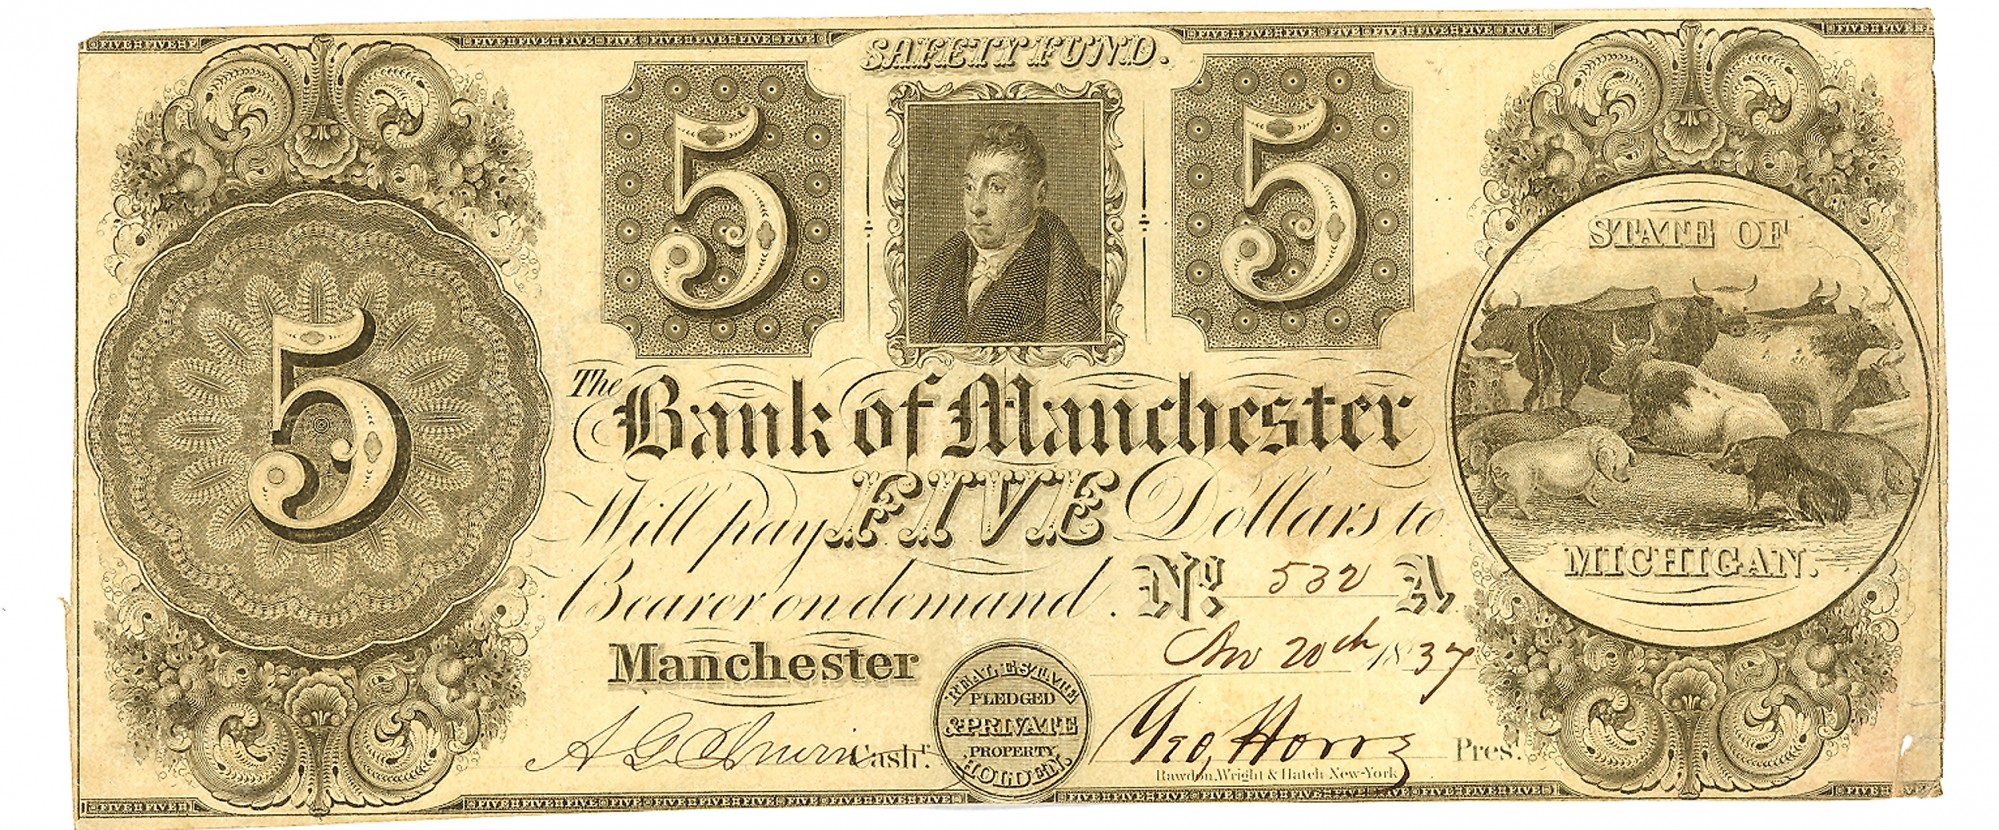 THE BANK OF MANCHESTER, MANCHESTER, MICHIGAN $5 NOTE